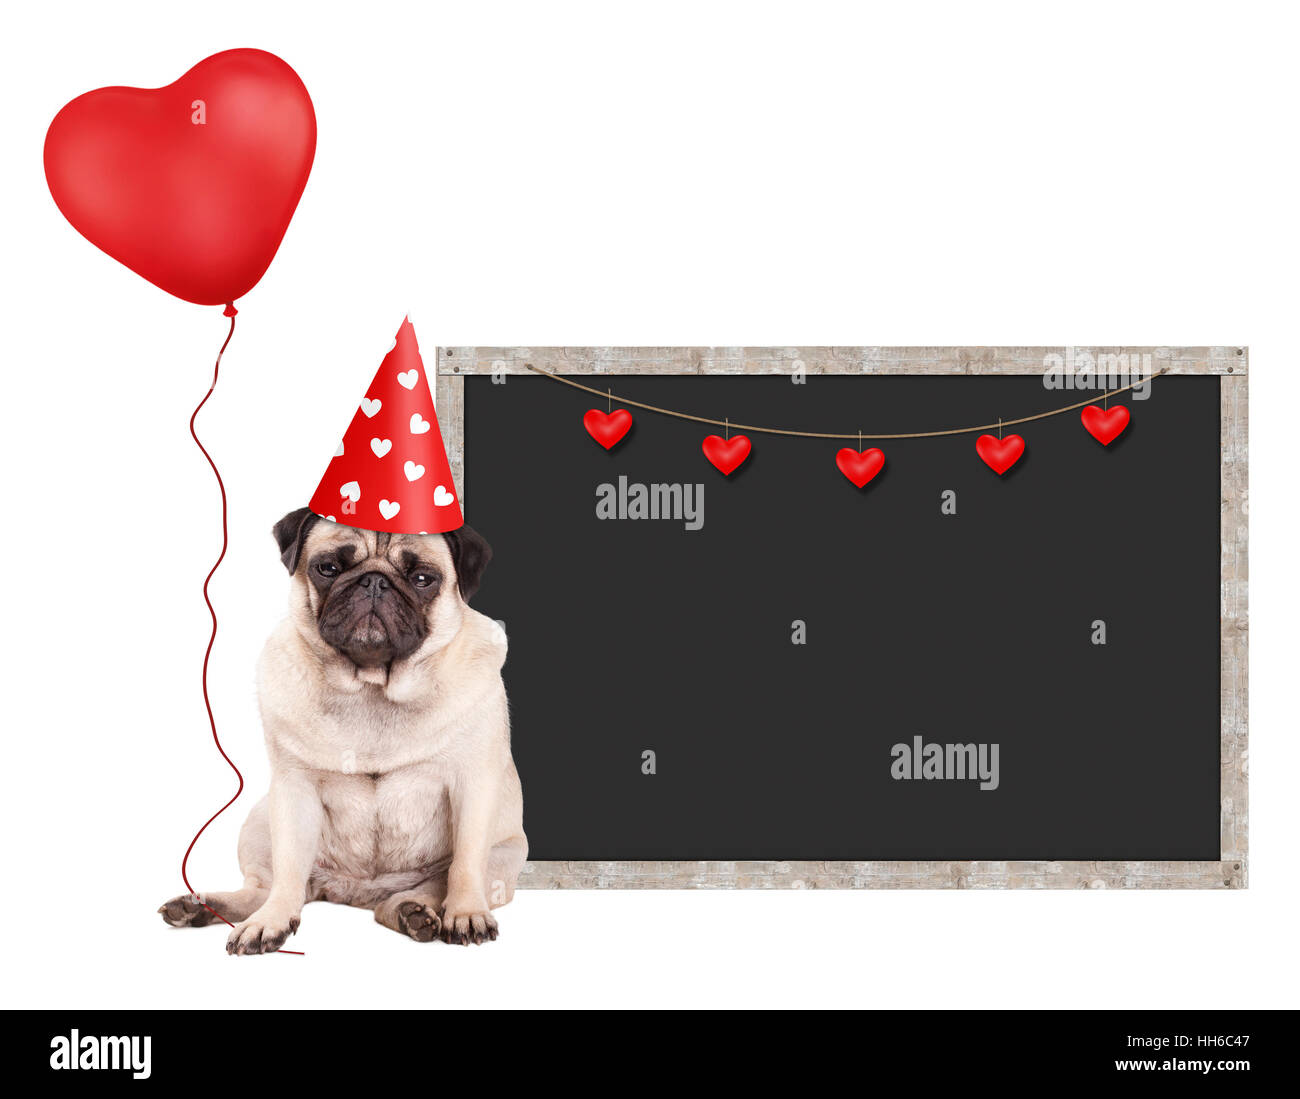 cute pug puppy dog with red party hat, sitting next to blank blackboard sign and holding heart shaped balloon, isolated Stock Photo